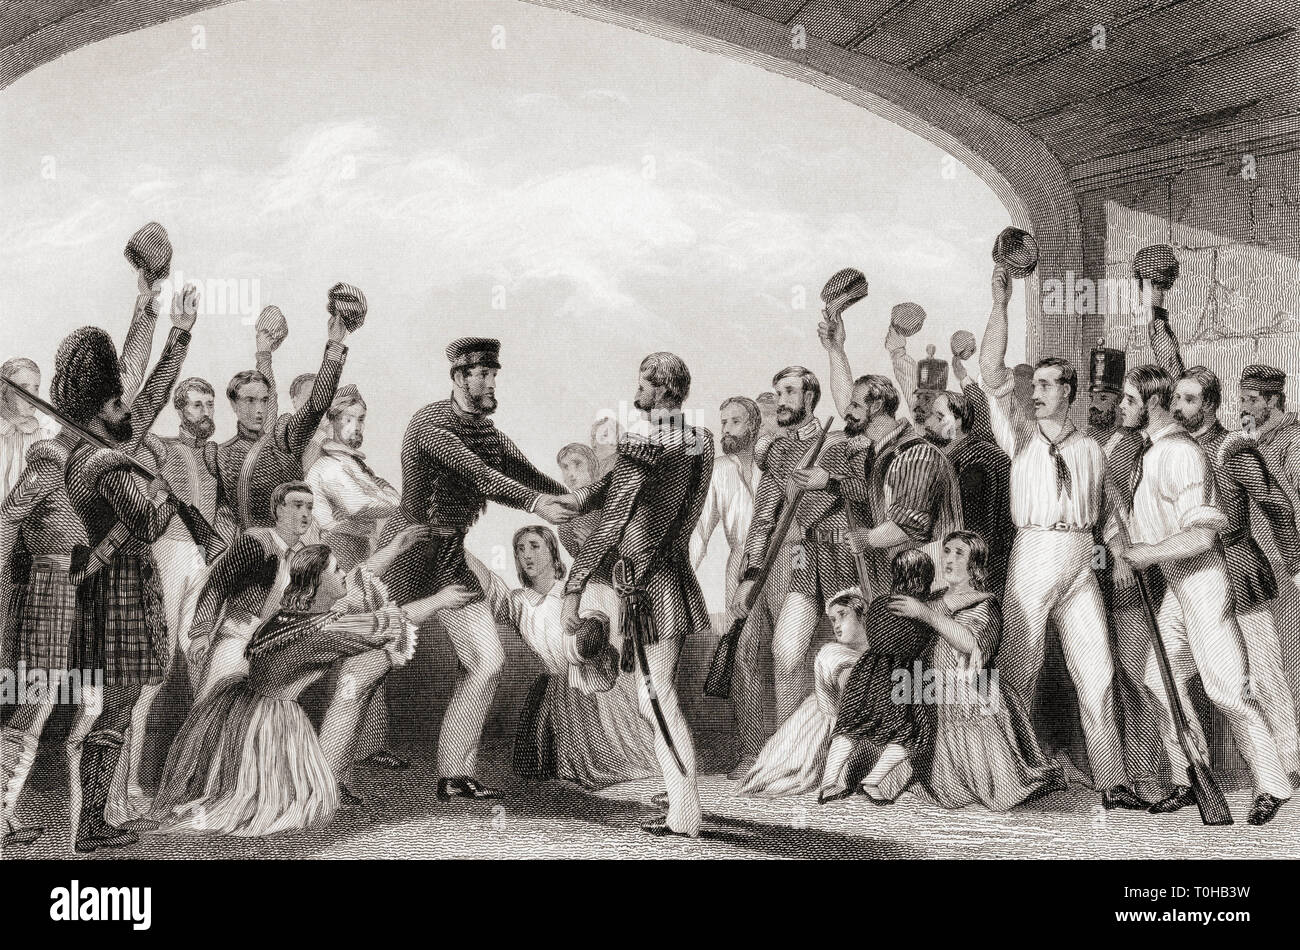 Relief of Lucknow by General Havelock, India, Asia, 1857 Stock Photo